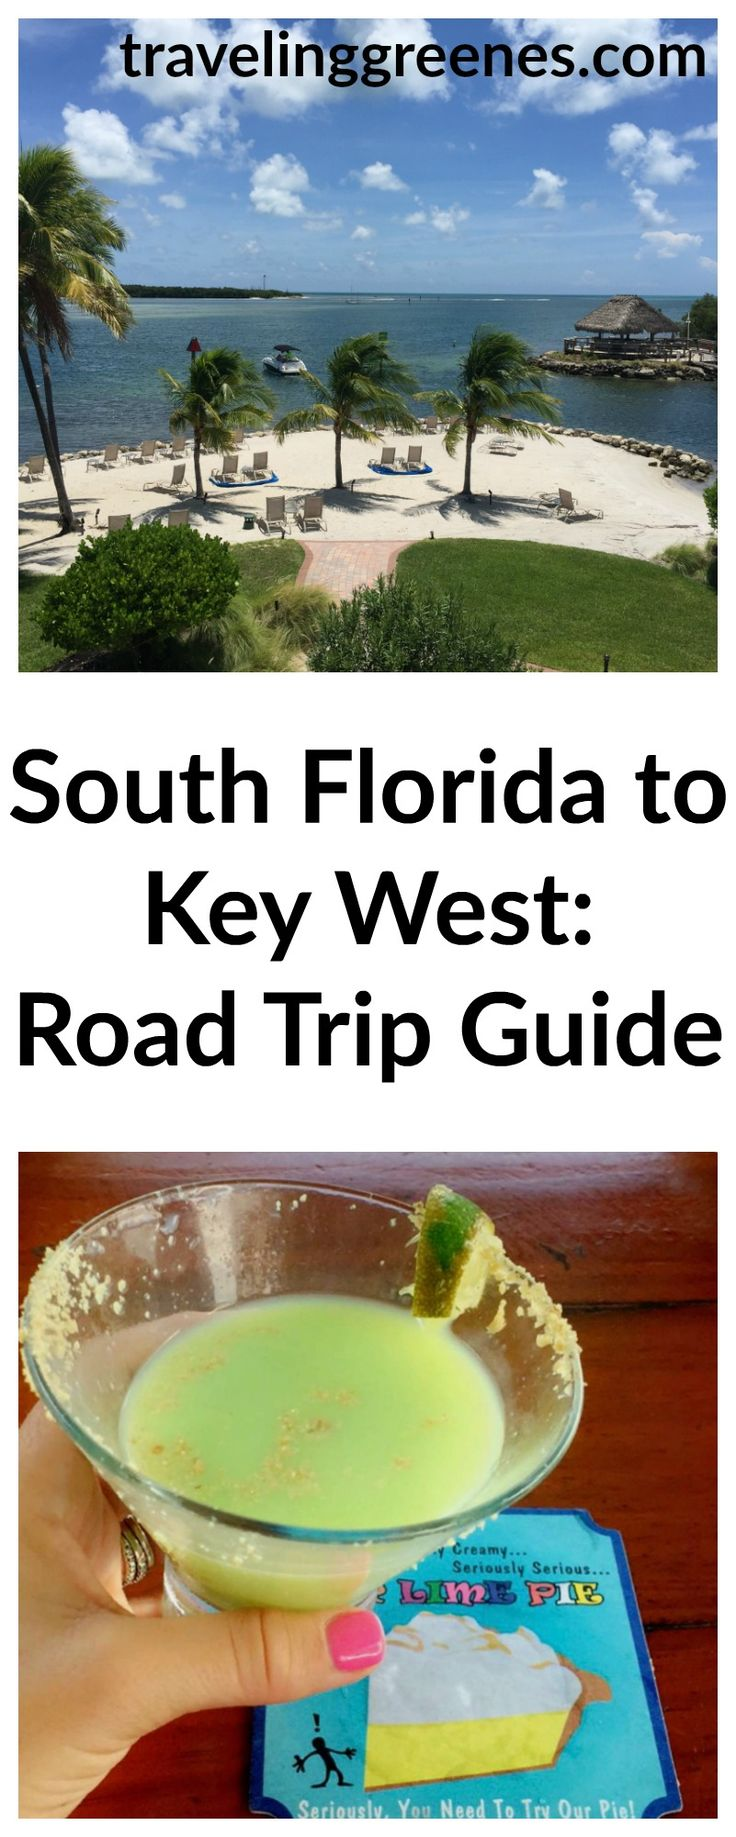 Road Trip Guide: South Florida to Key WestTraveling Greenes: Travel & Lifestyle blog